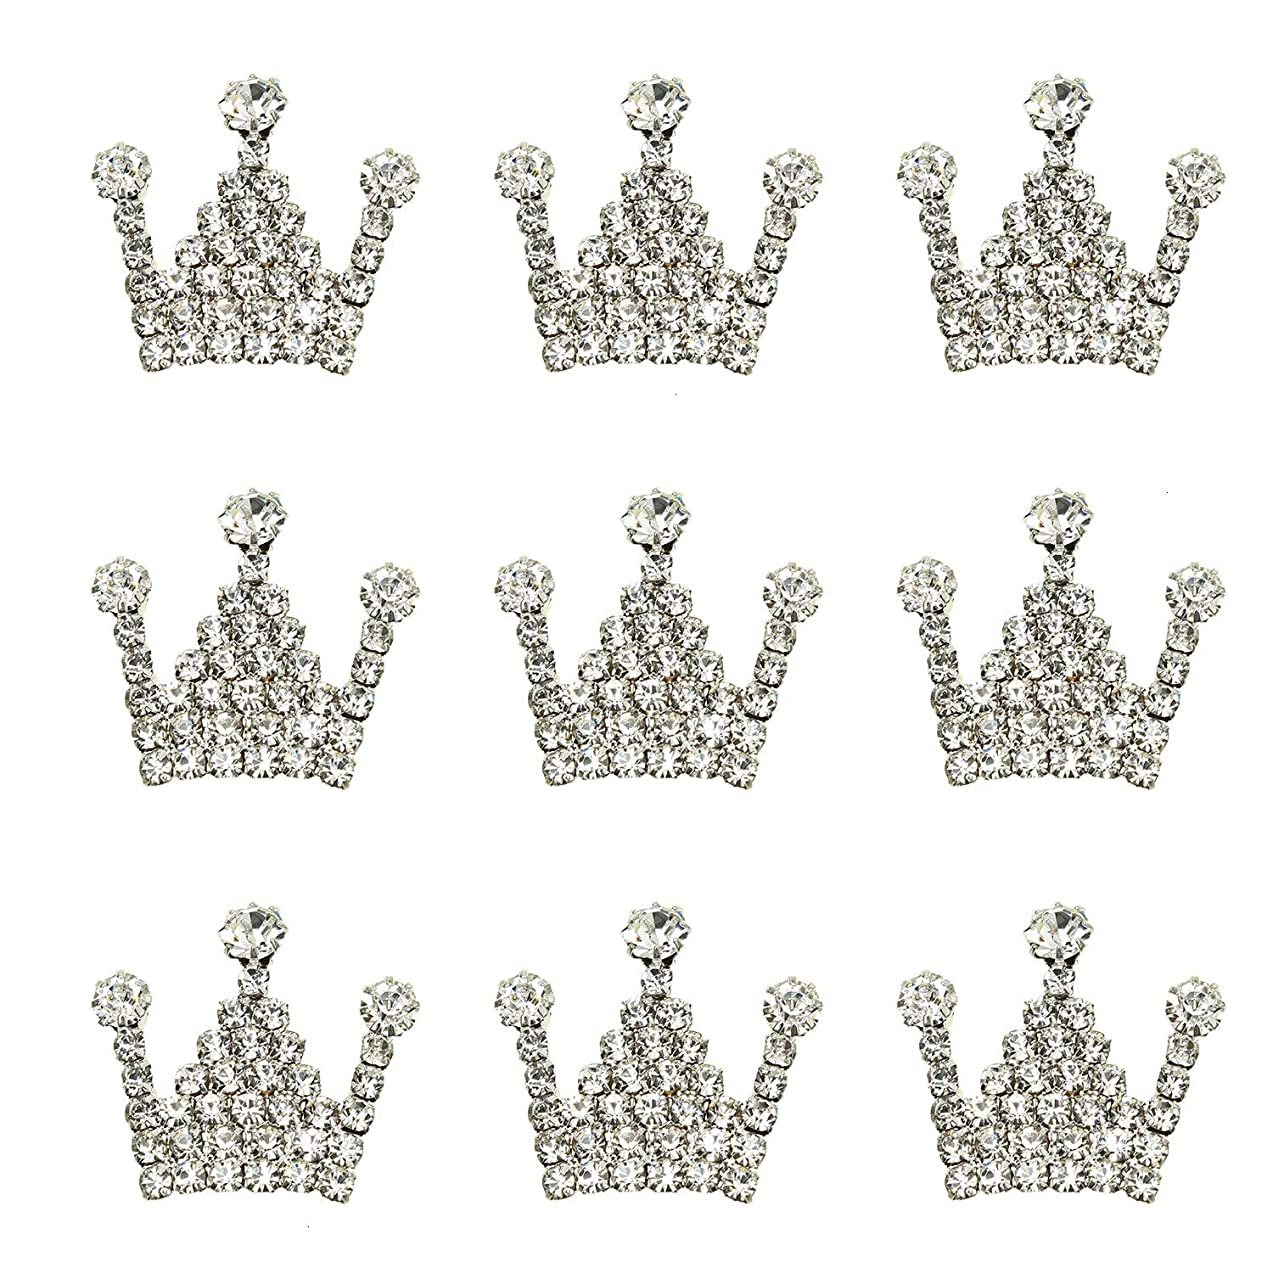 Monrocco 10pcs Crystal Rhinestone Crown Charms Alloy Flat Back Embellishment for DIY Crafting